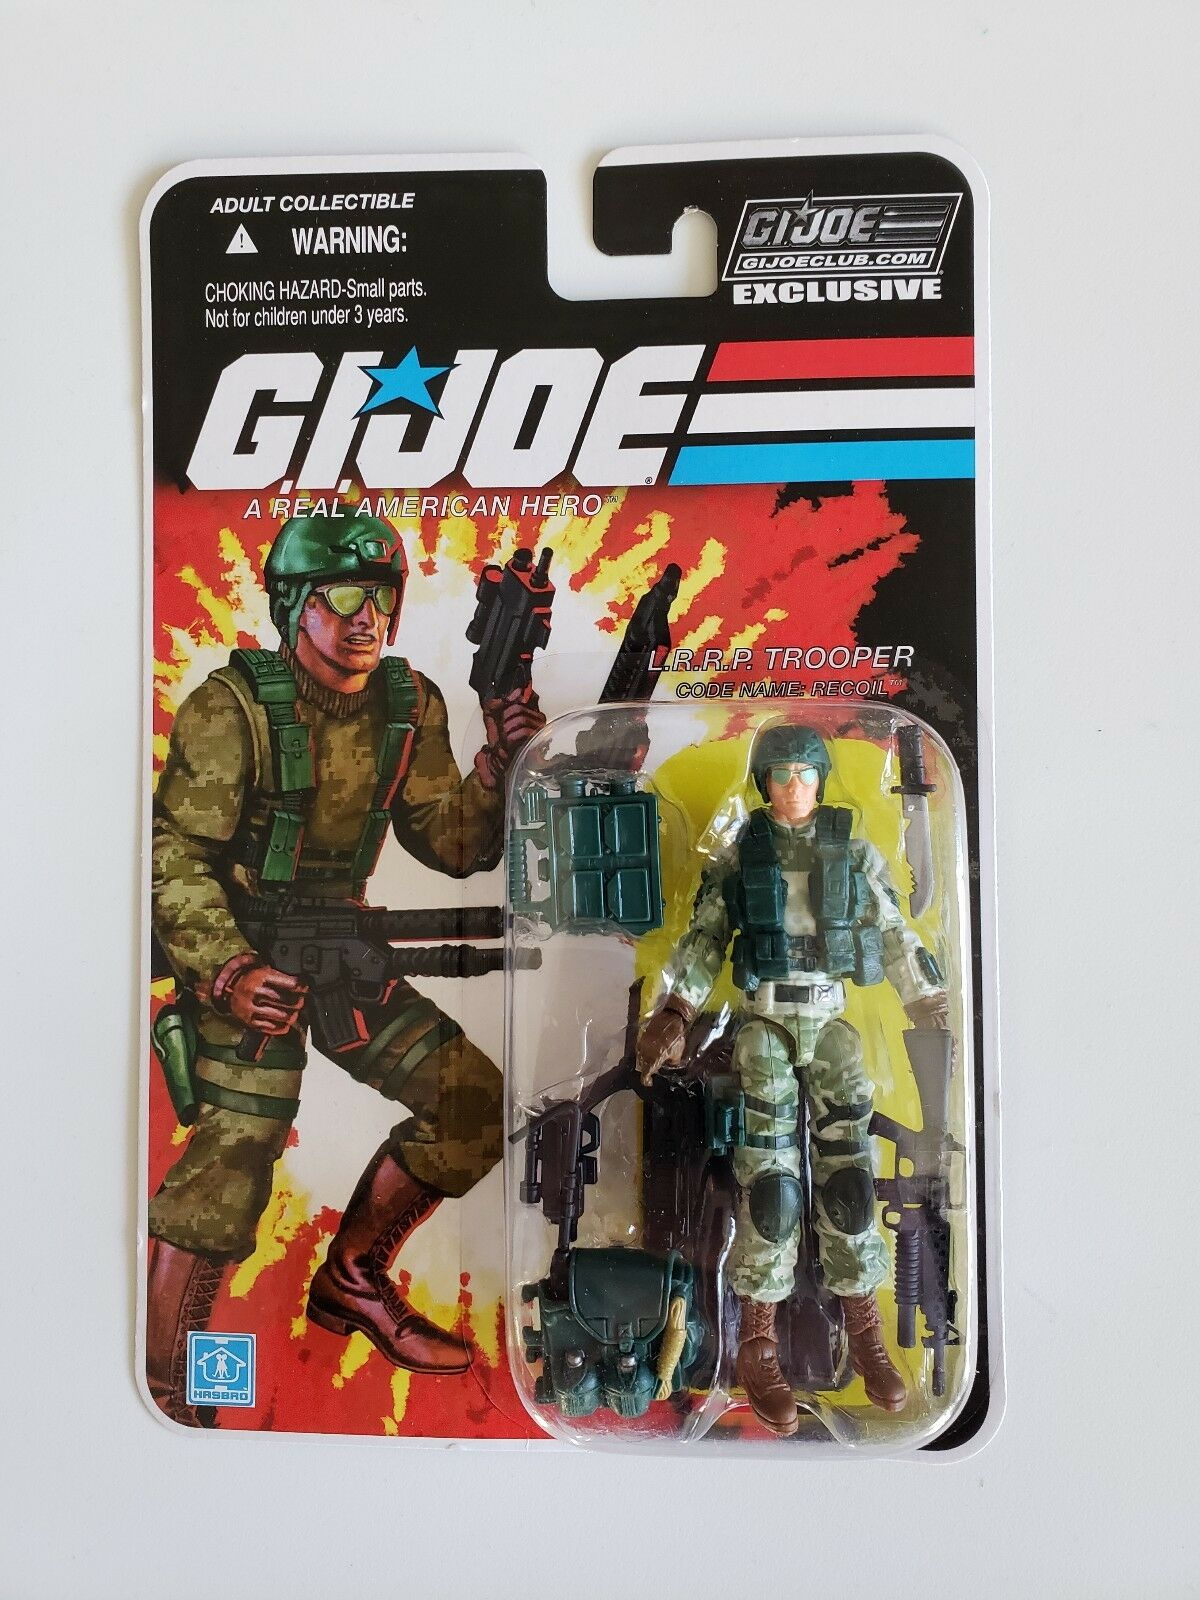 RECOIL FSS 8.0 MOC GI Joe Club Exclusive